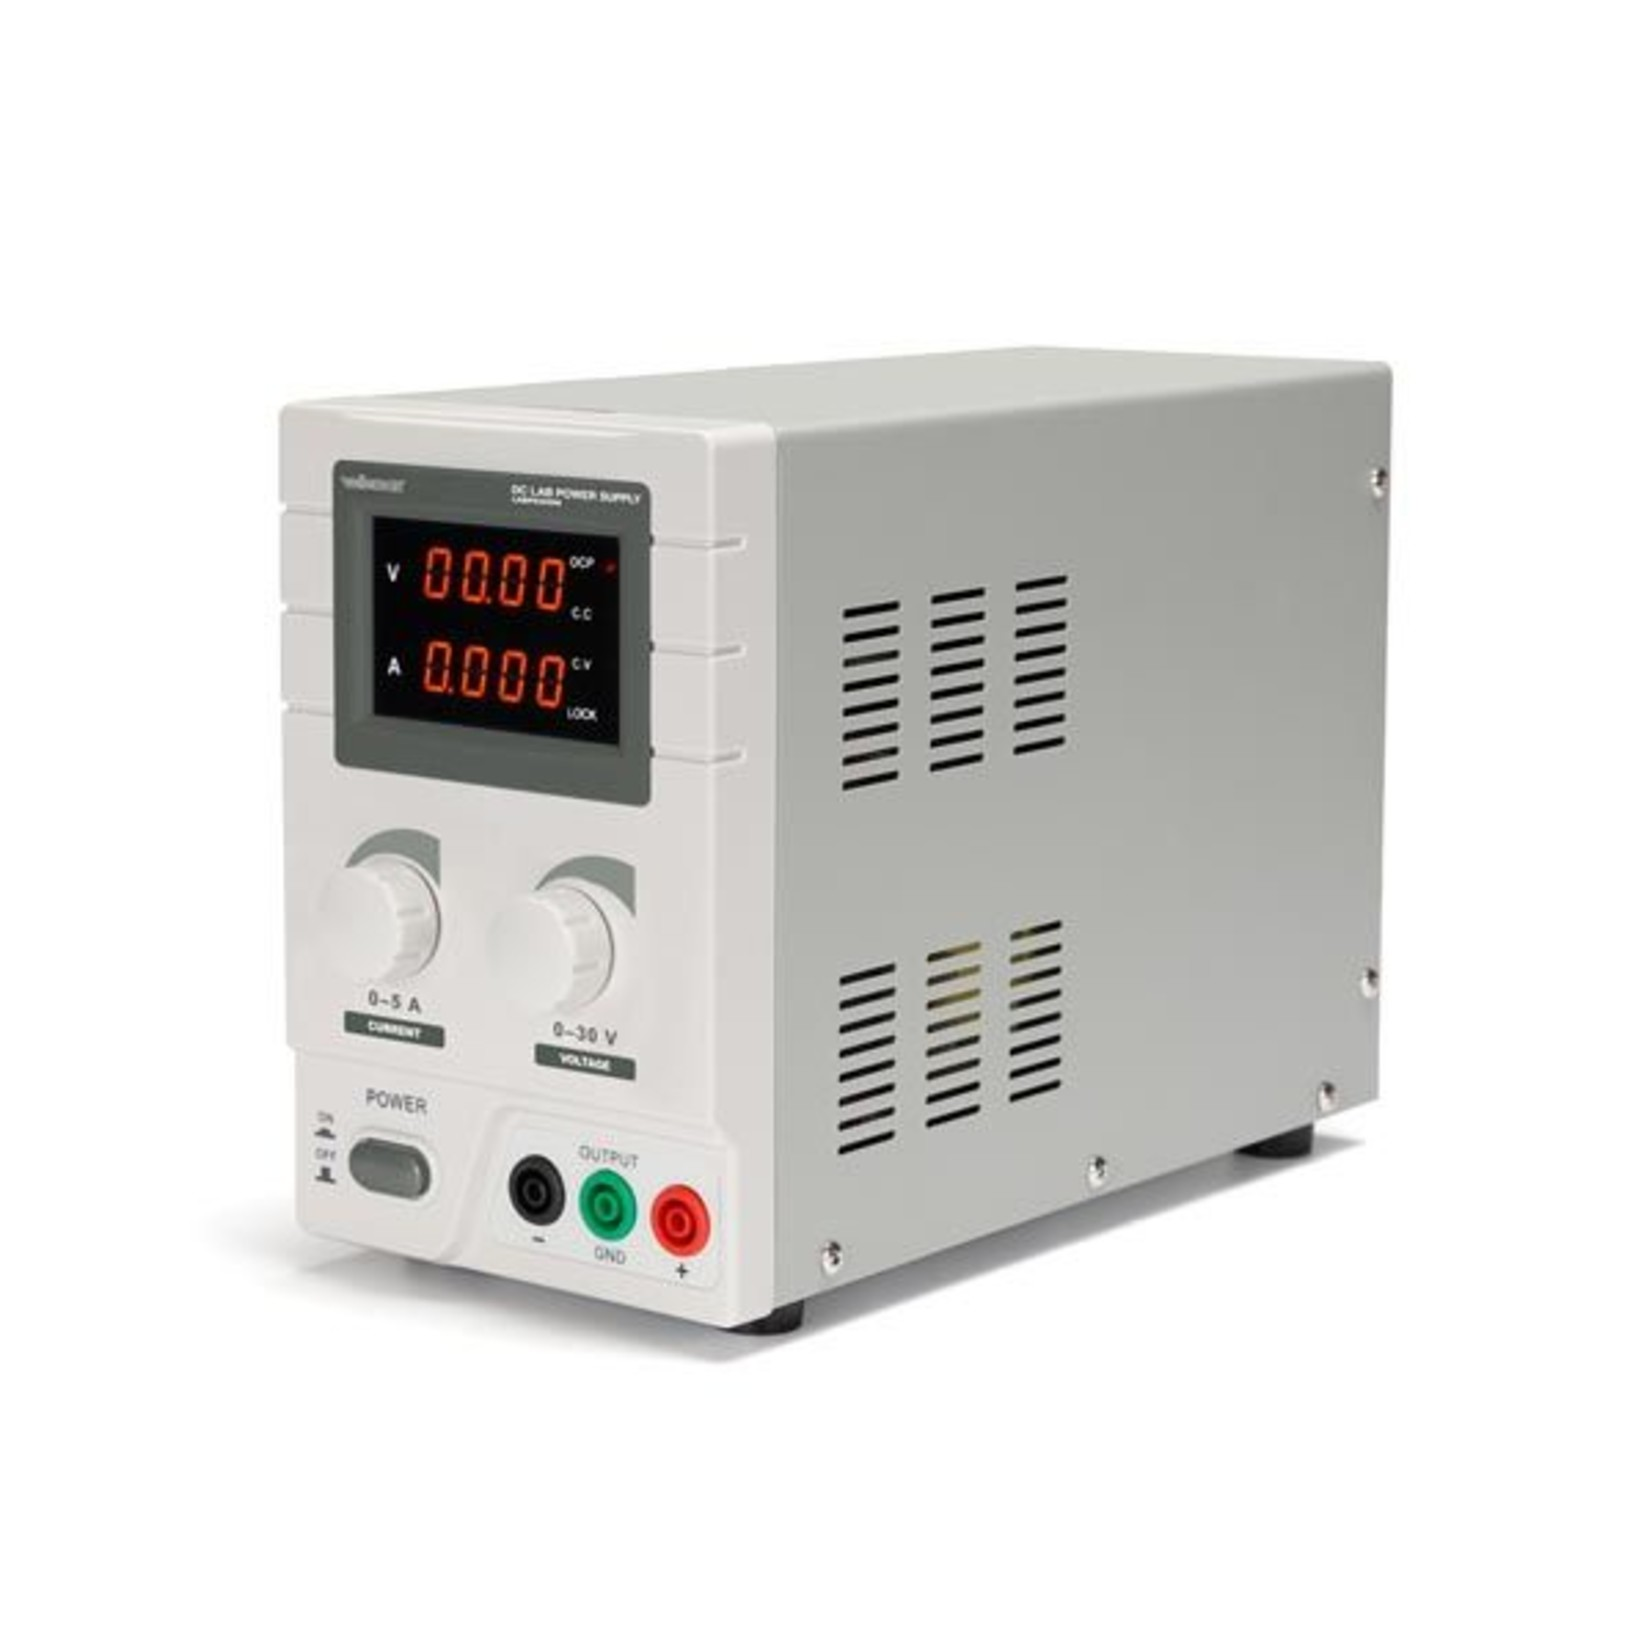 Velleman LABPS3005N Lab power supply 0-30 VDC / 0-5 A